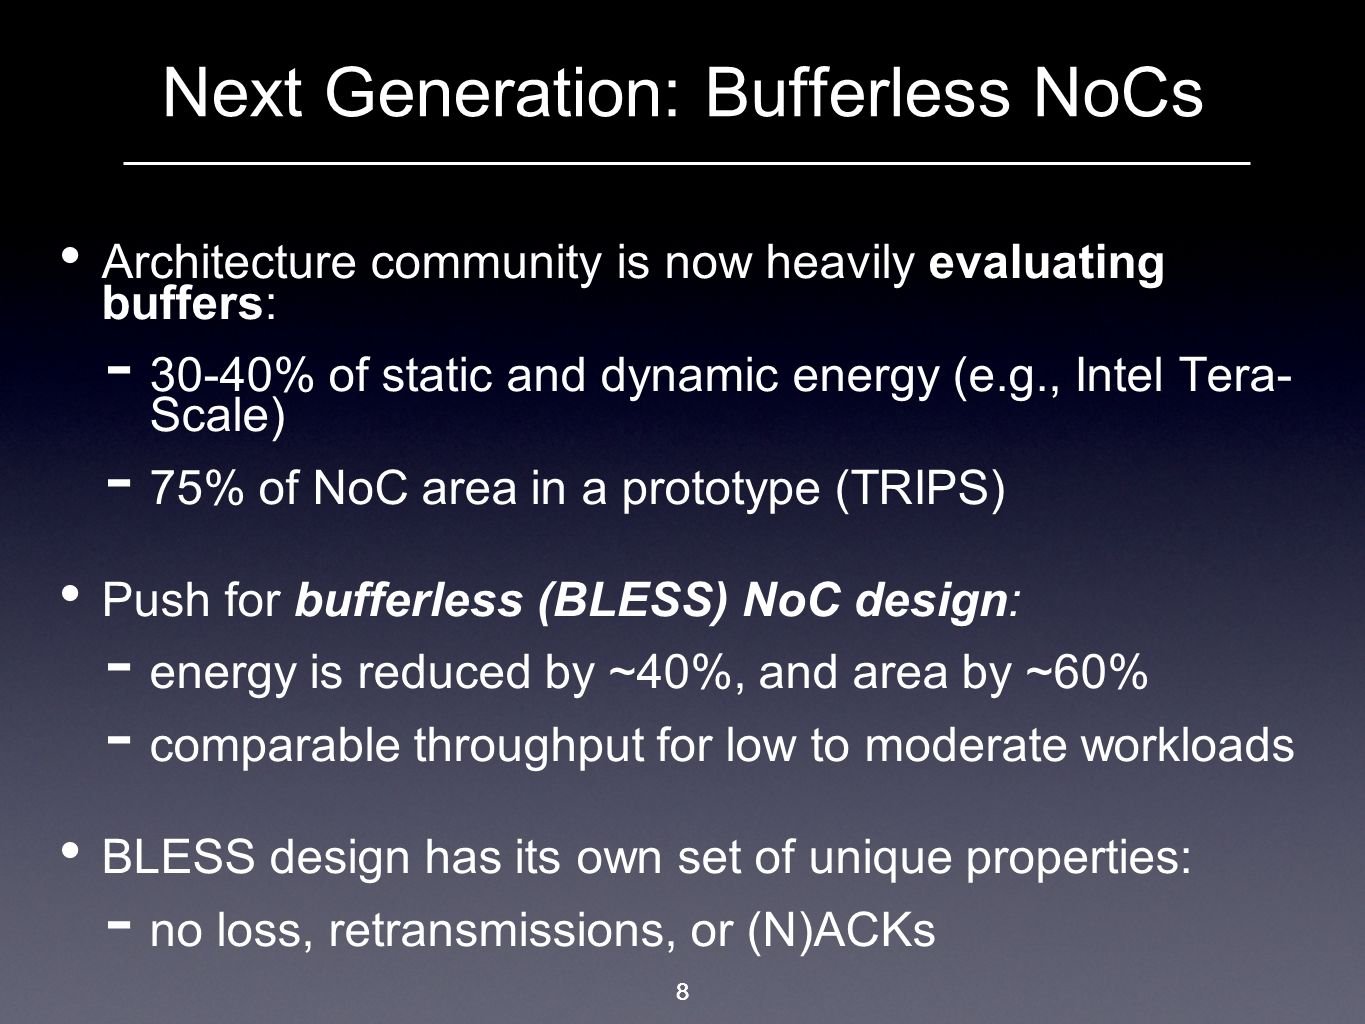 Next Generation: Bufferless NoCs